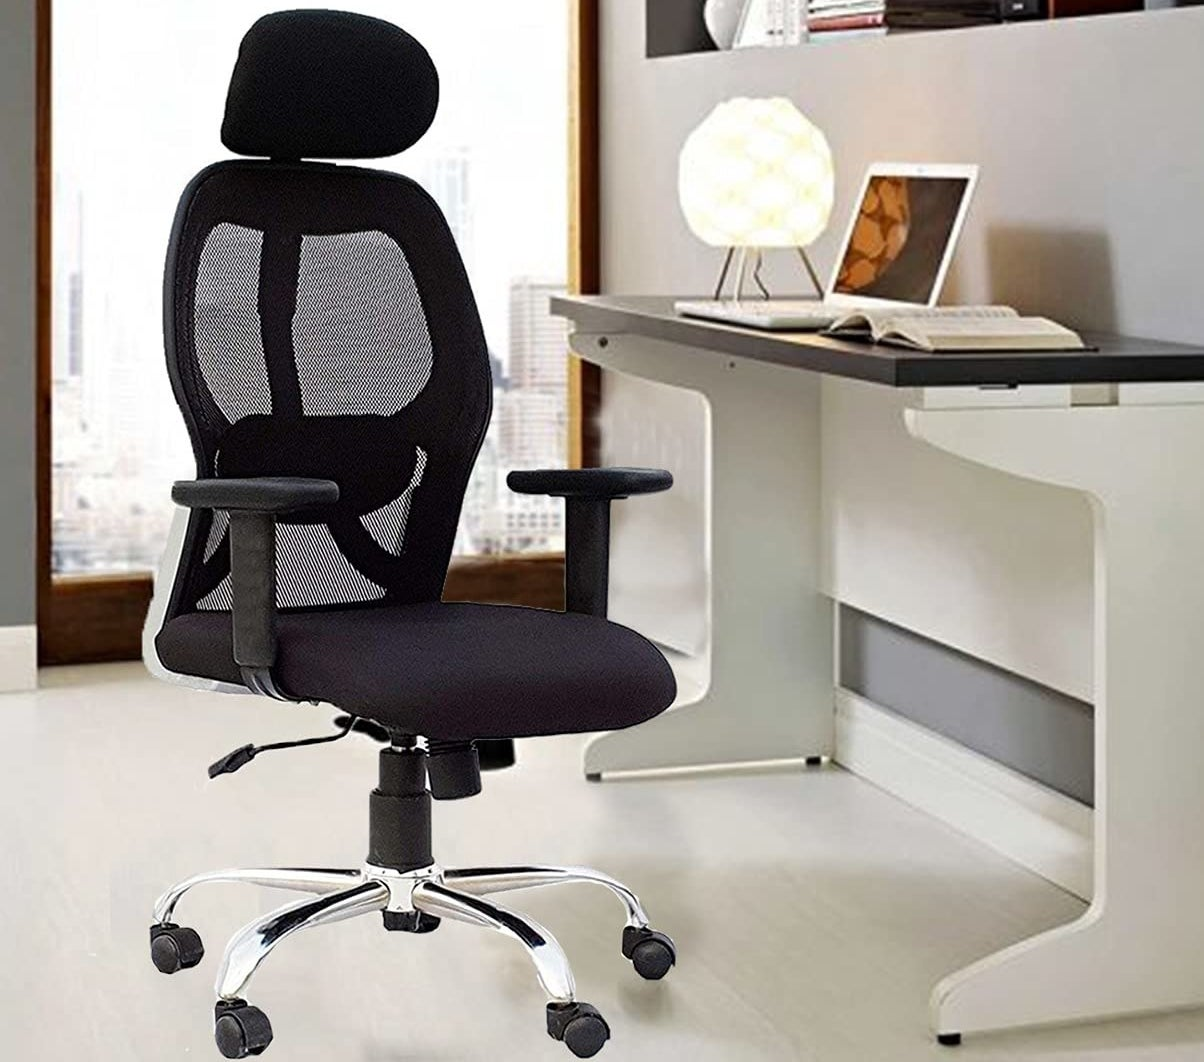 An ergonomic desk chair in a room with a work desk in front of it.